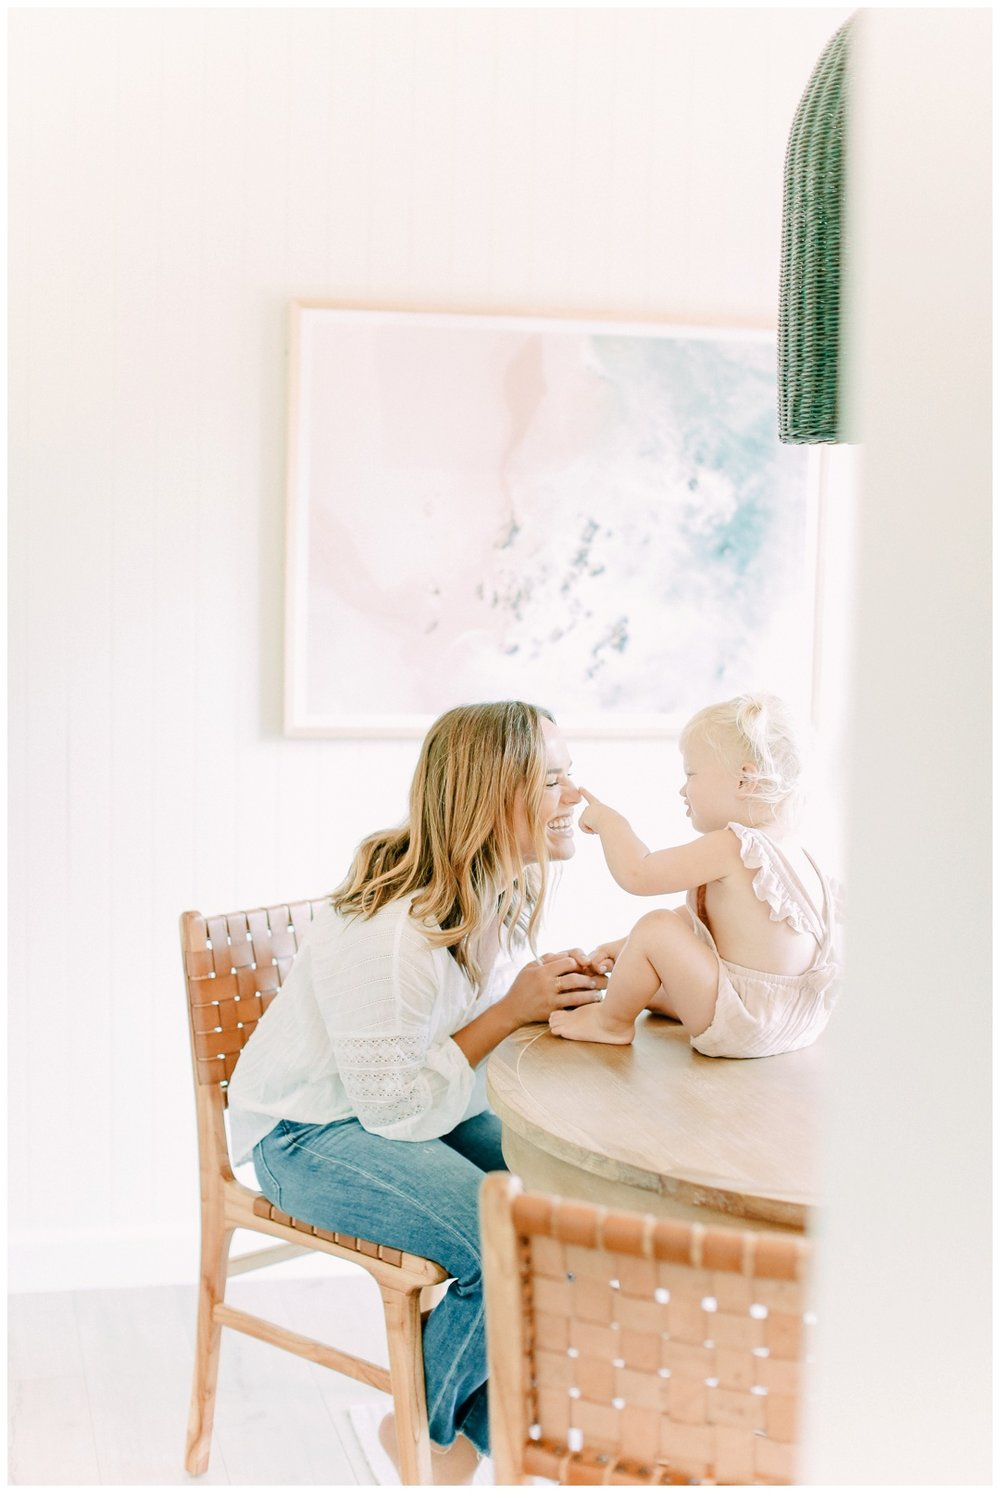 Kristin_Dinsmore_Family_Newport_Beach_Family_Photographer_in_home_lifestyle_session_Cori_kleckner_photography_Orange_county_in_home_Family_photos_Newport_Beach_Family_photos__1770.jpg